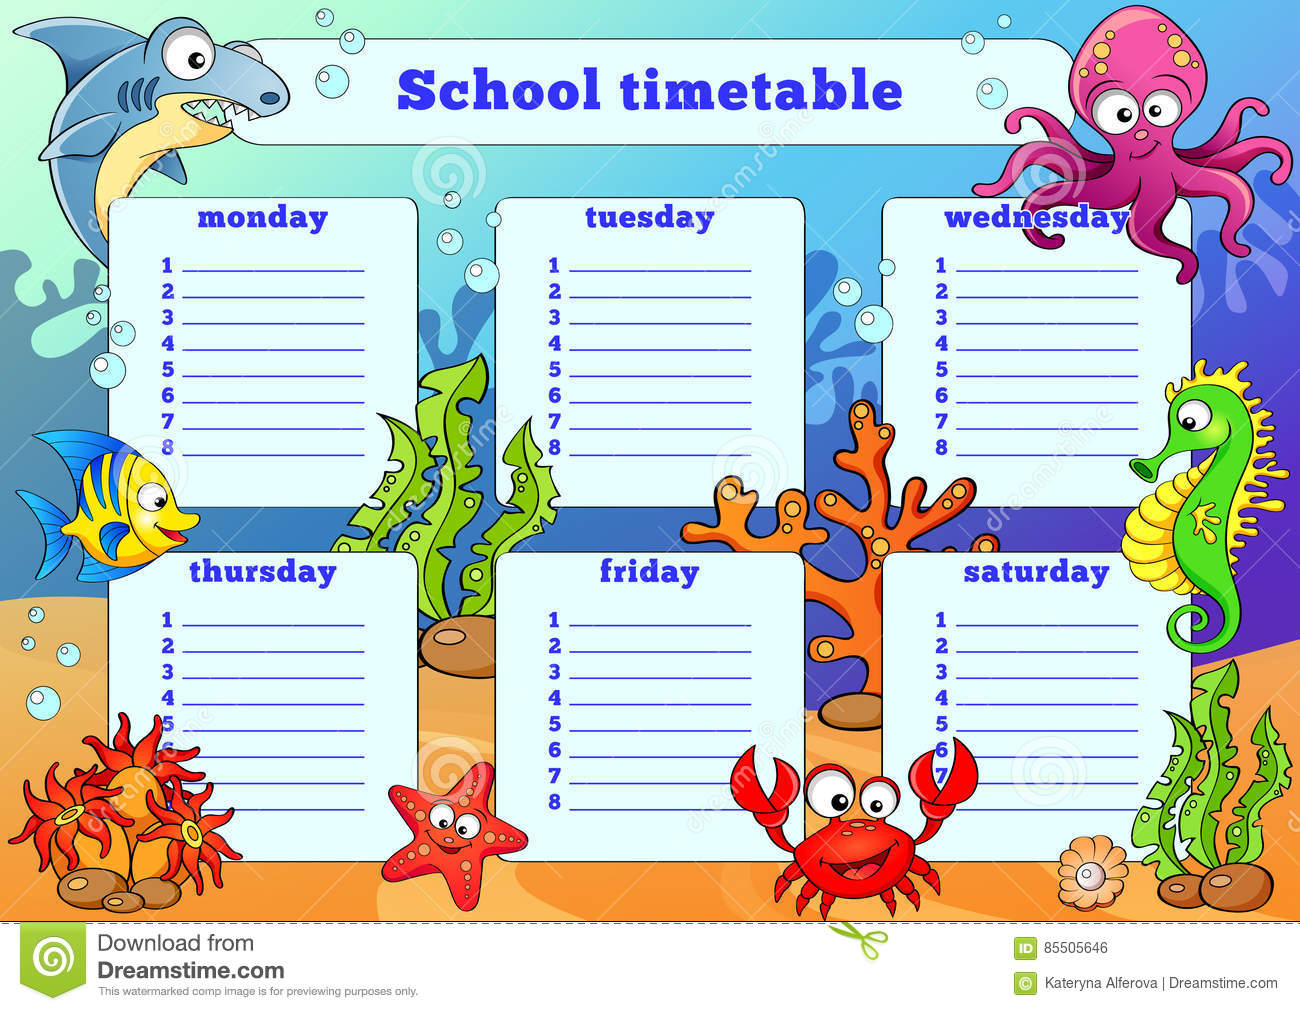 Maxresdefault additionally School Timetable Sea Animals Vector Illustration furthermore Cute Monster Illustration Very Spotted besides Uify G together with Green Cartoon Alien Face Download Royalty Free Vector File Eps. on cute cartoon monsters